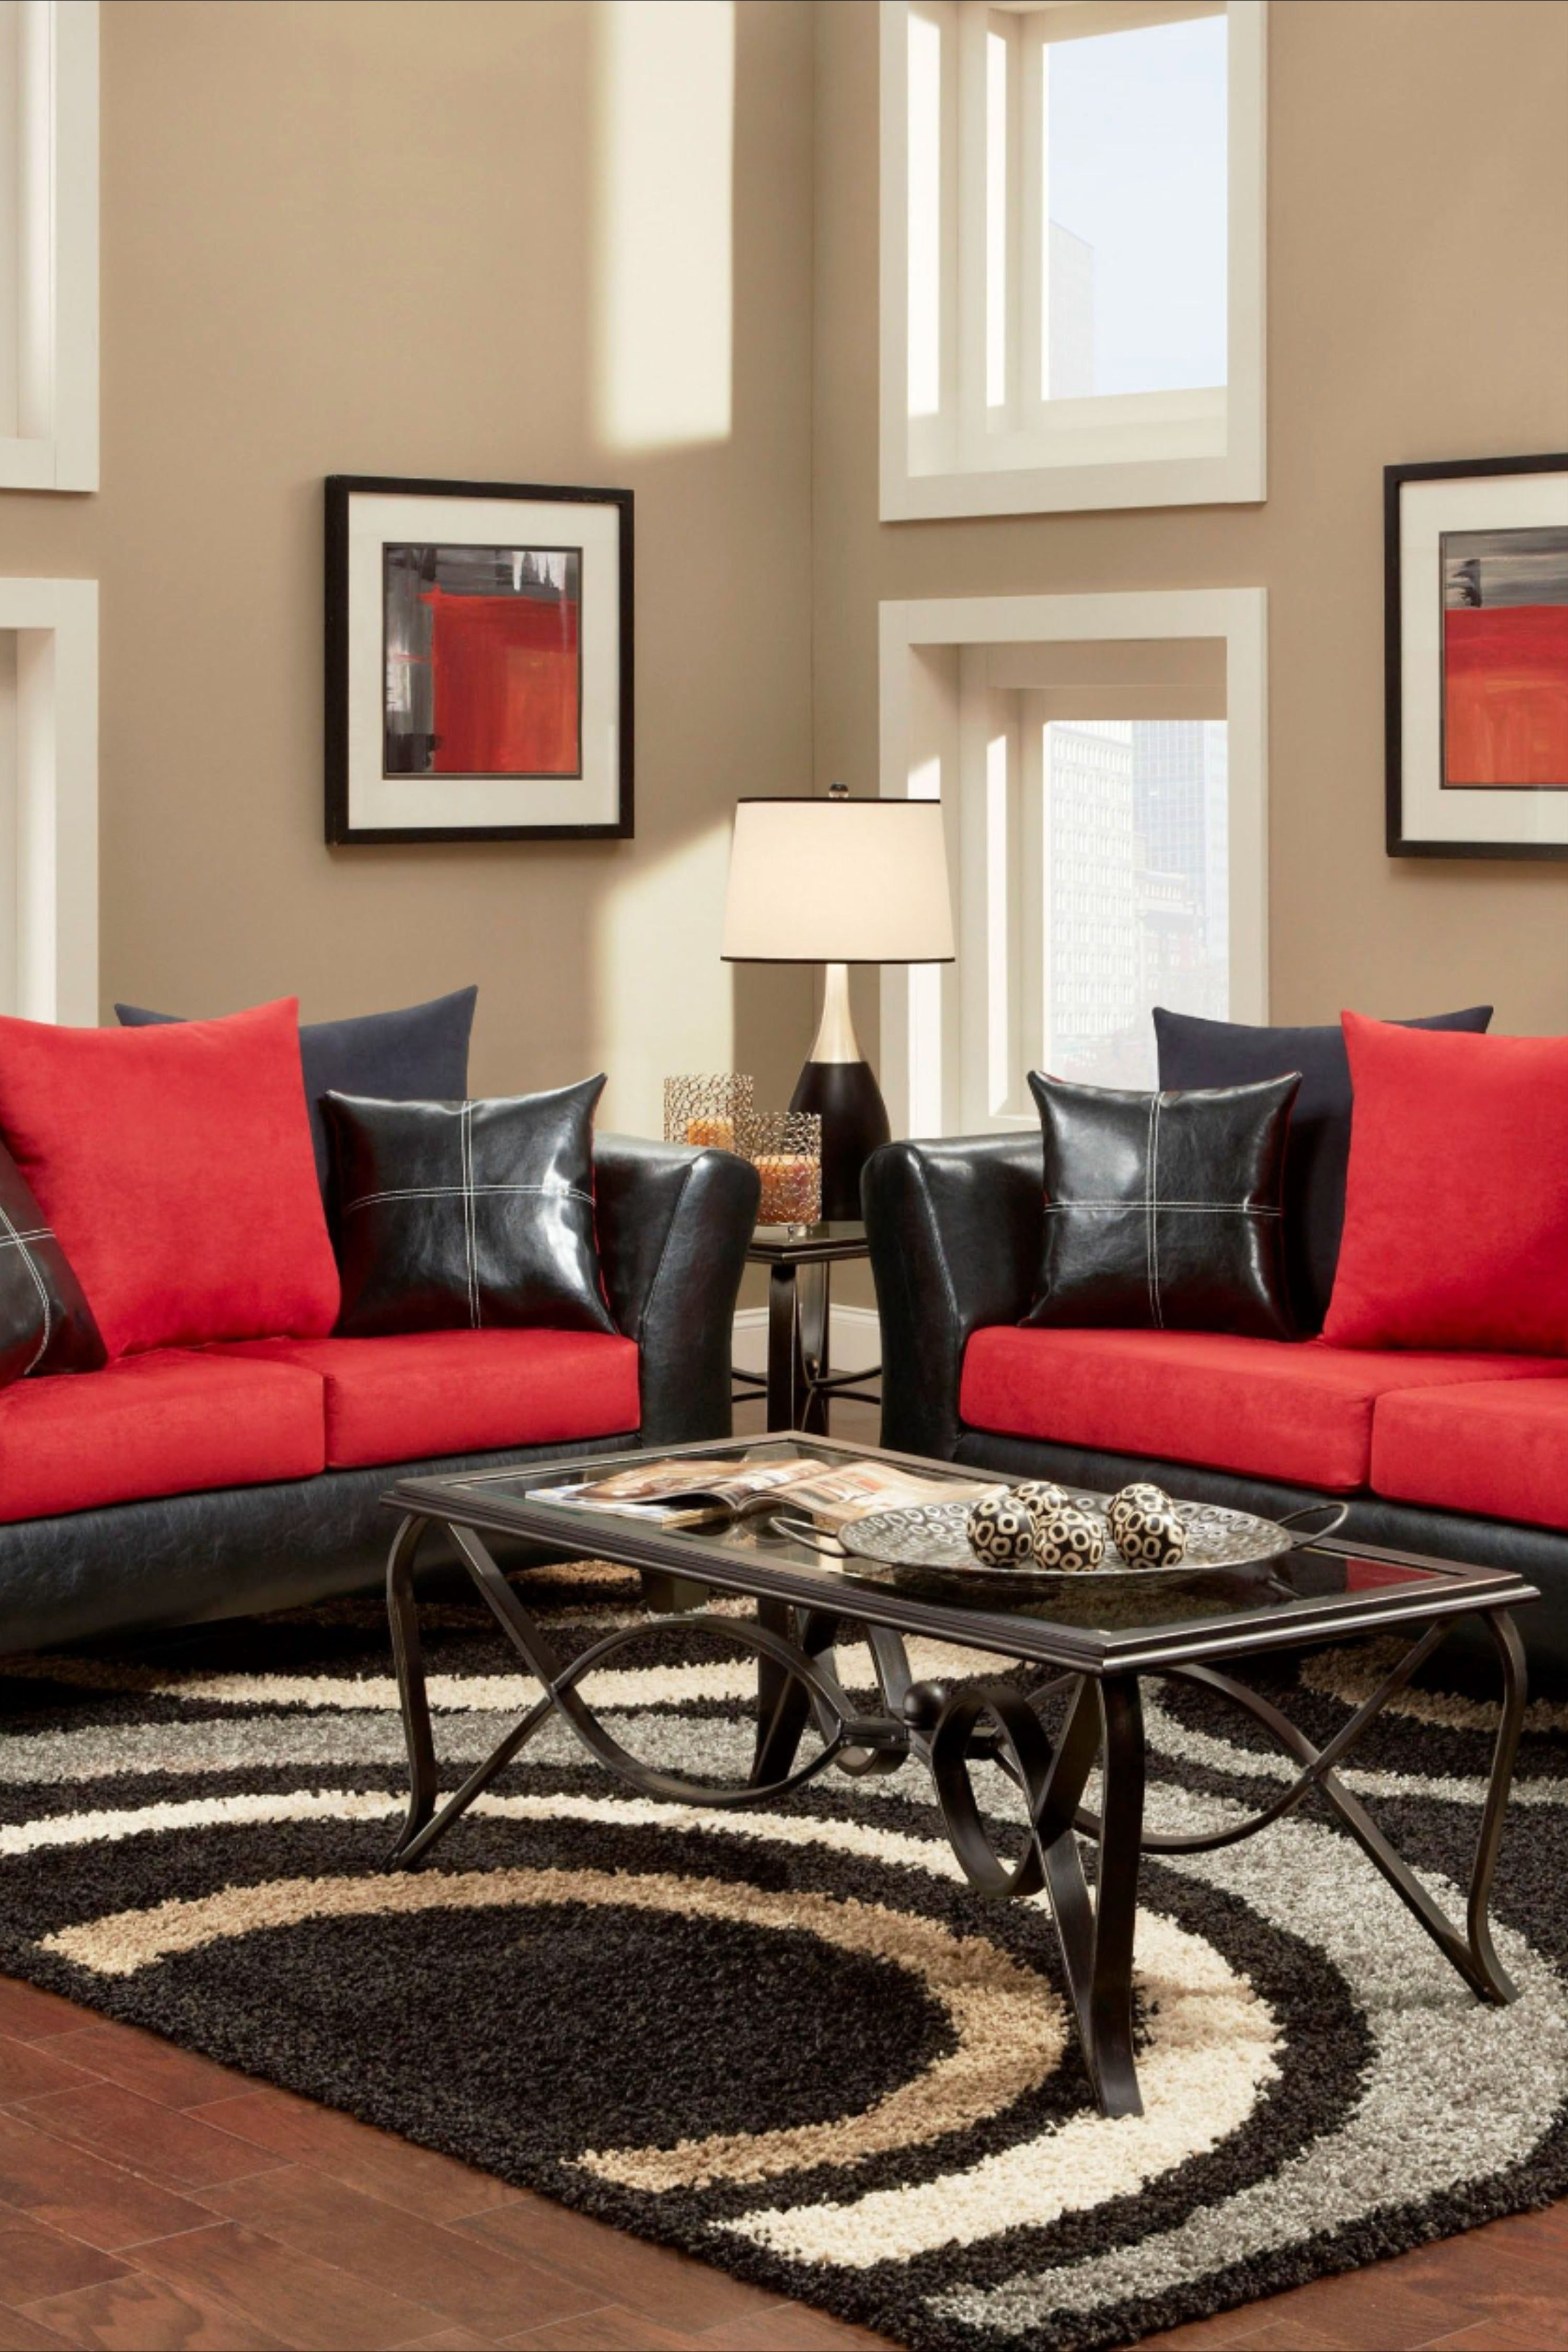 17 Apartment Living Room Decorating Ideas Avilow Com In 2021 Red Living Room Decor Living Room Red Black And Red Living Room